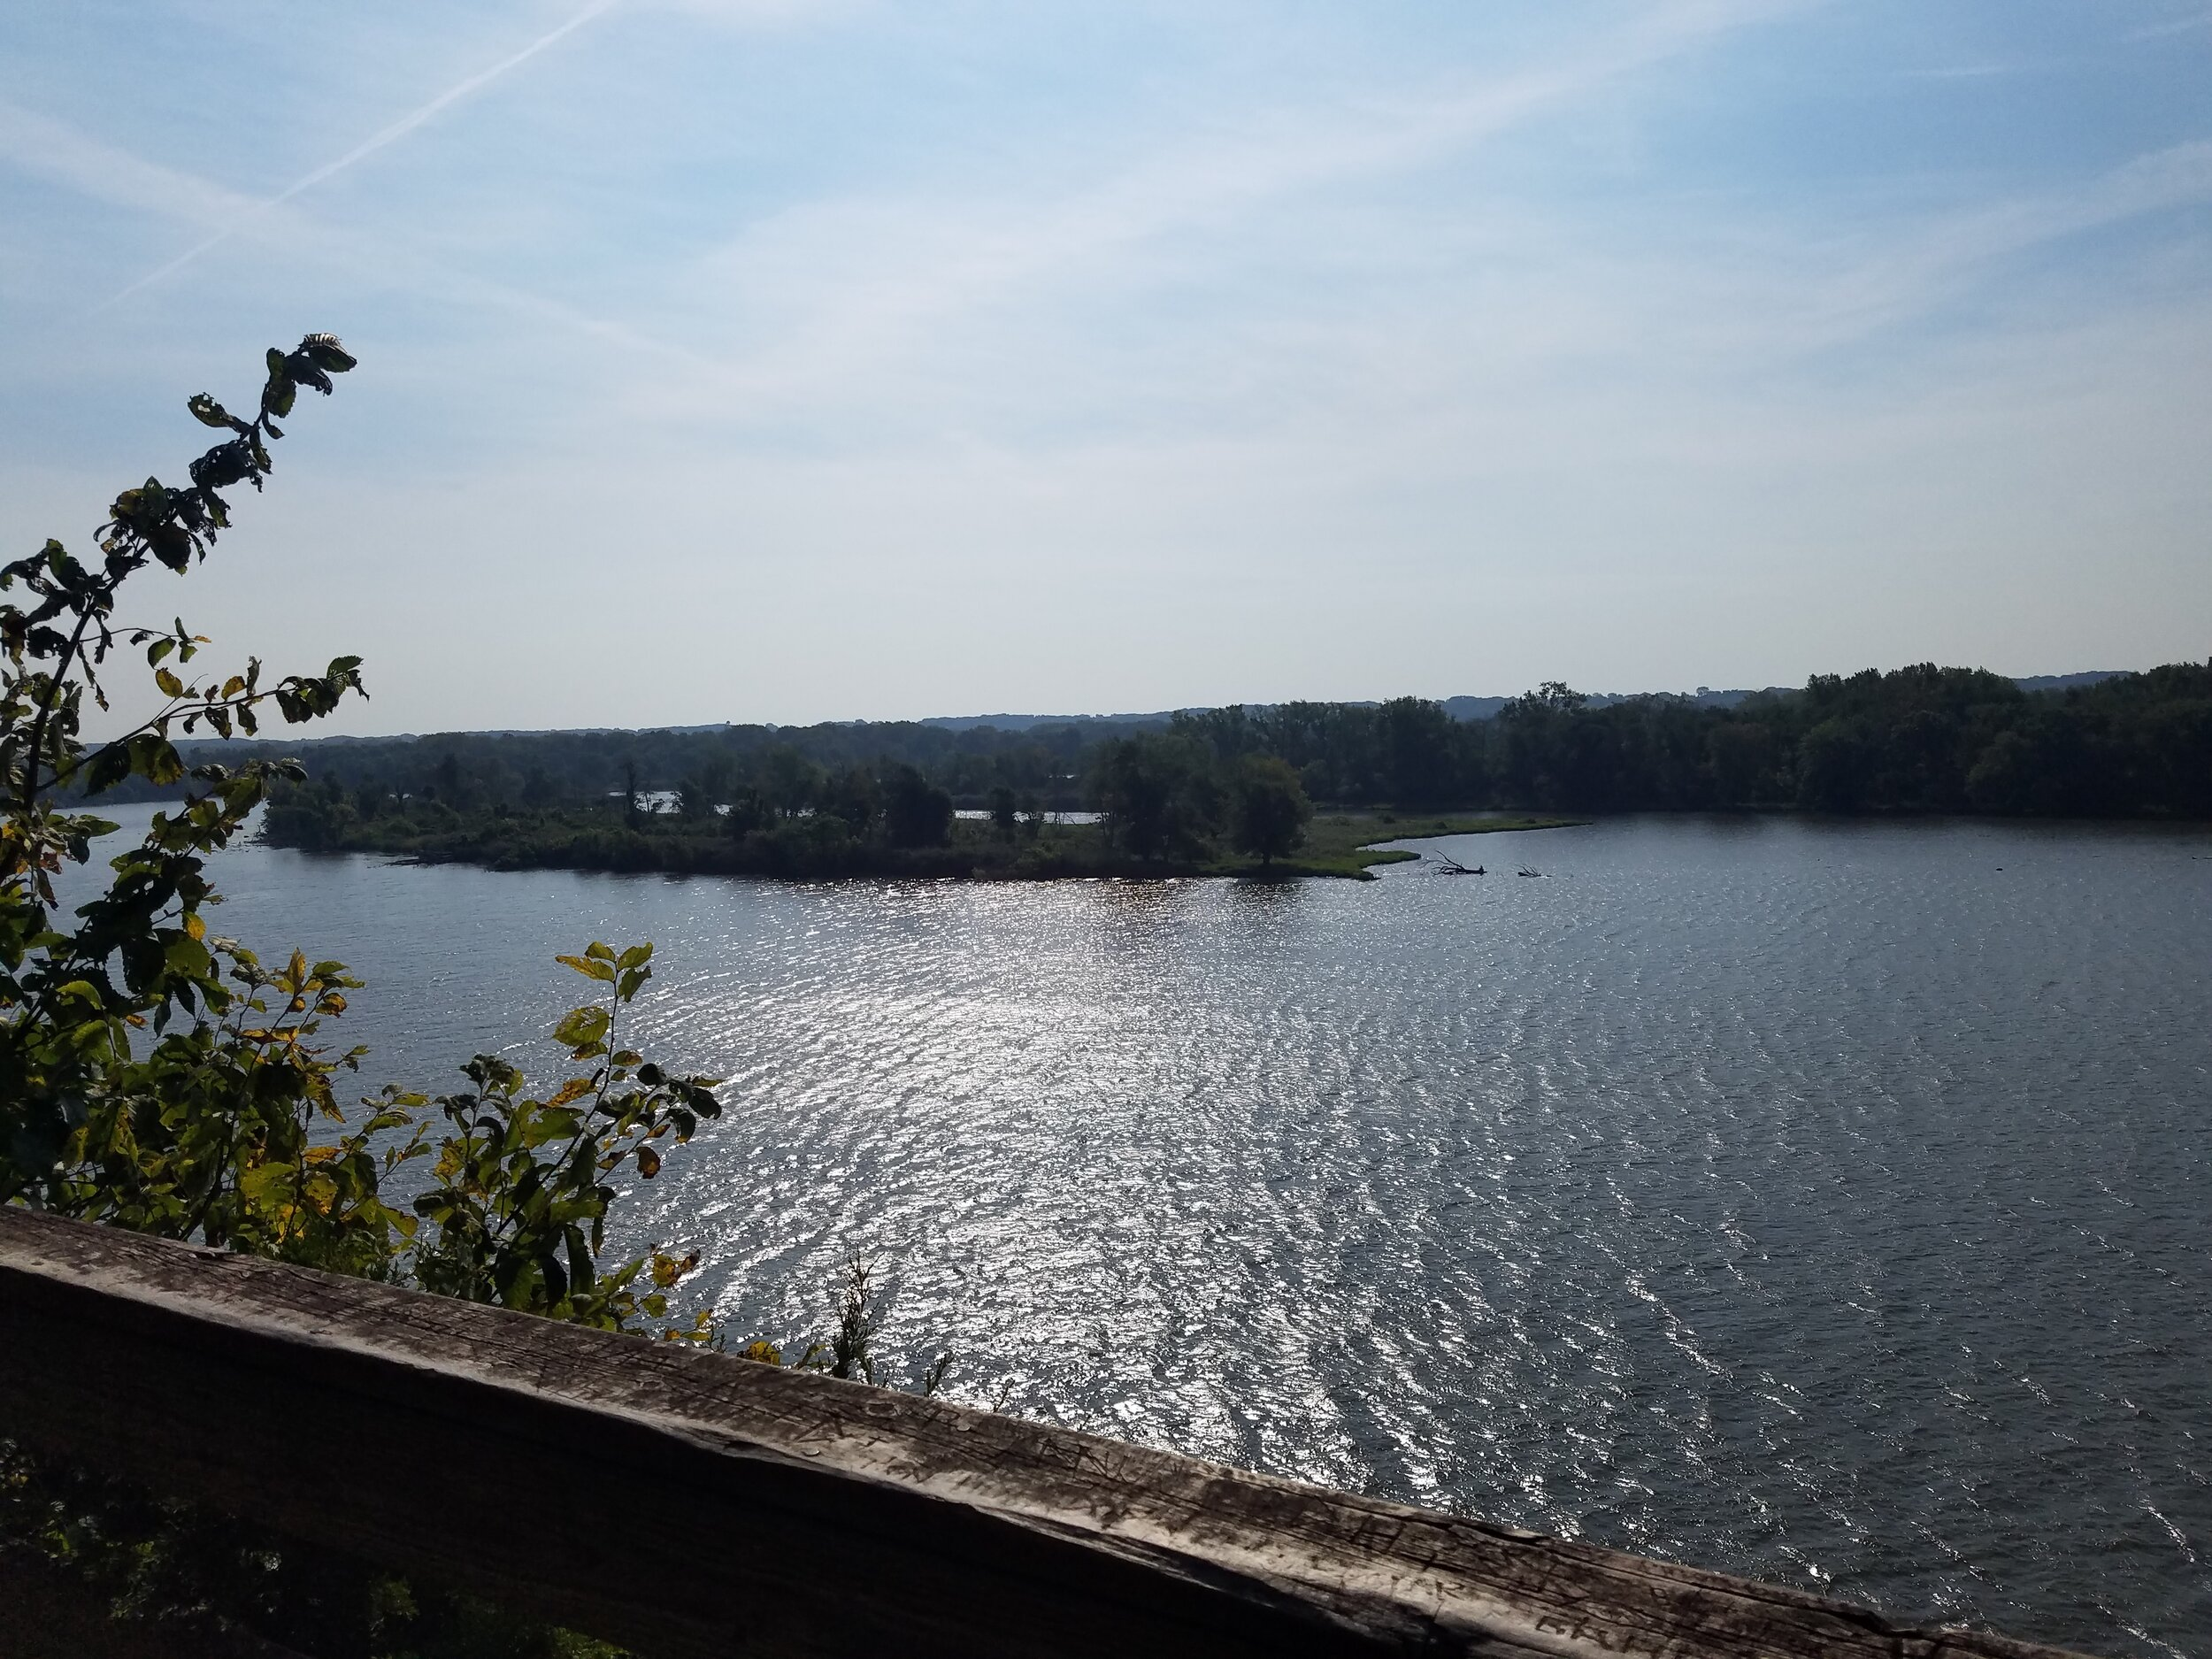 View of the Illinois River from the trail.